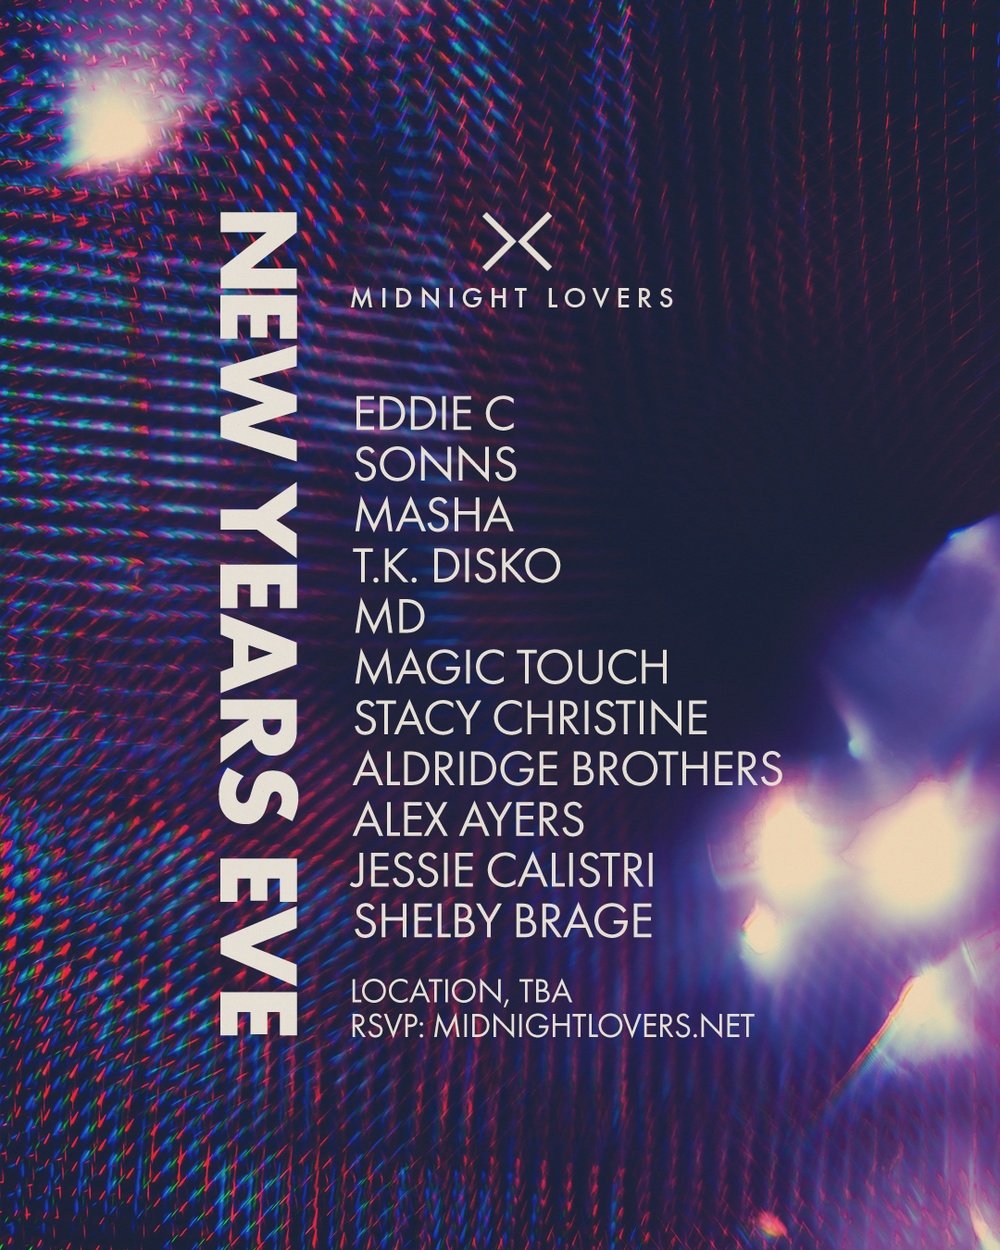 Midnight Lovers, NYE / NYD.  Location, TBA • Monday, December 31 / Tuesday, January 1st.  •   DISCOUNTED TICKET     •